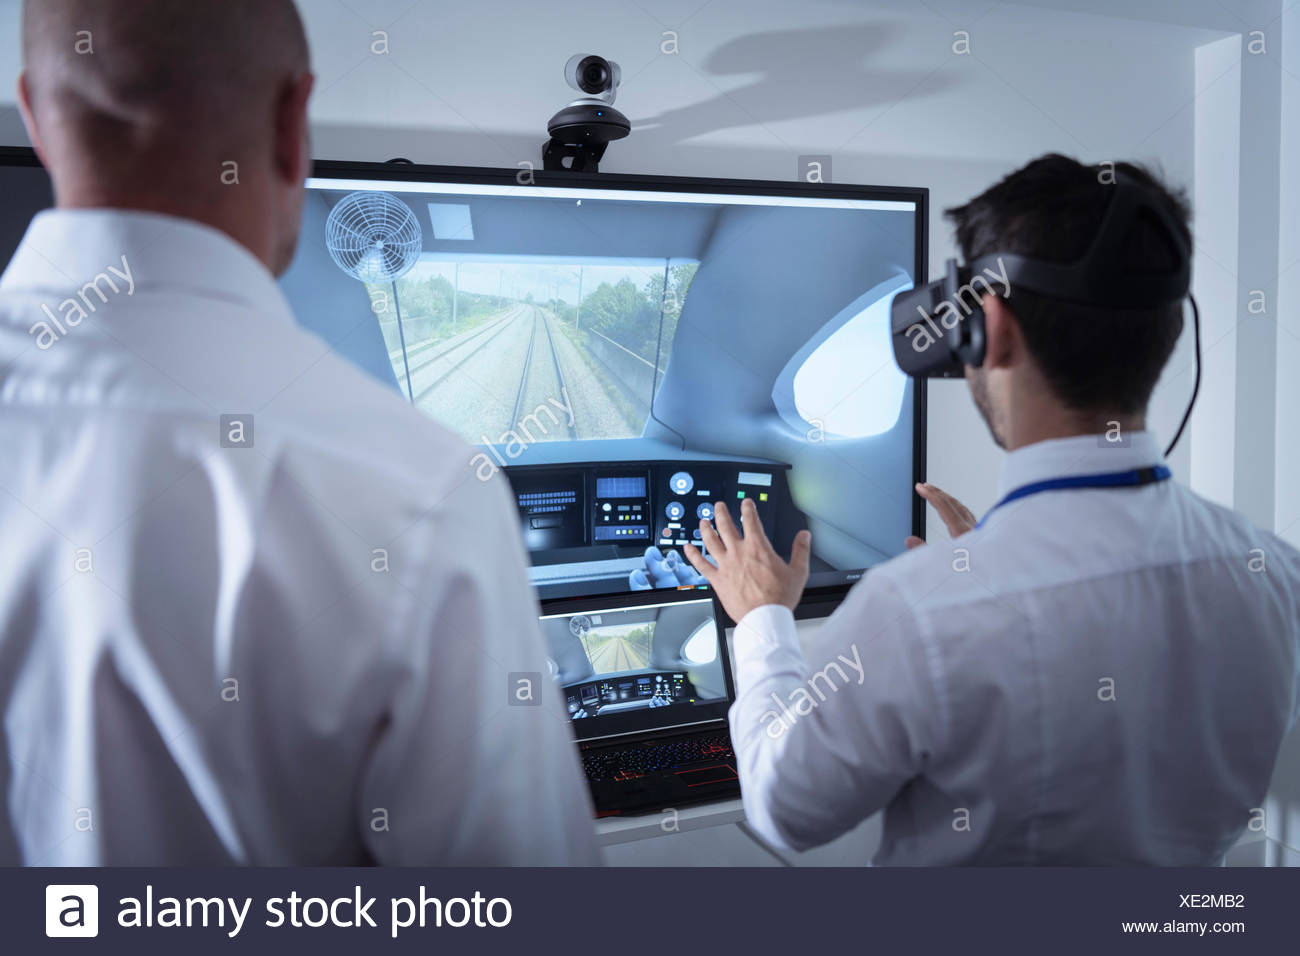 Instructor and apprentice using Virtual Reality system in railway engineering facility - Stock Image